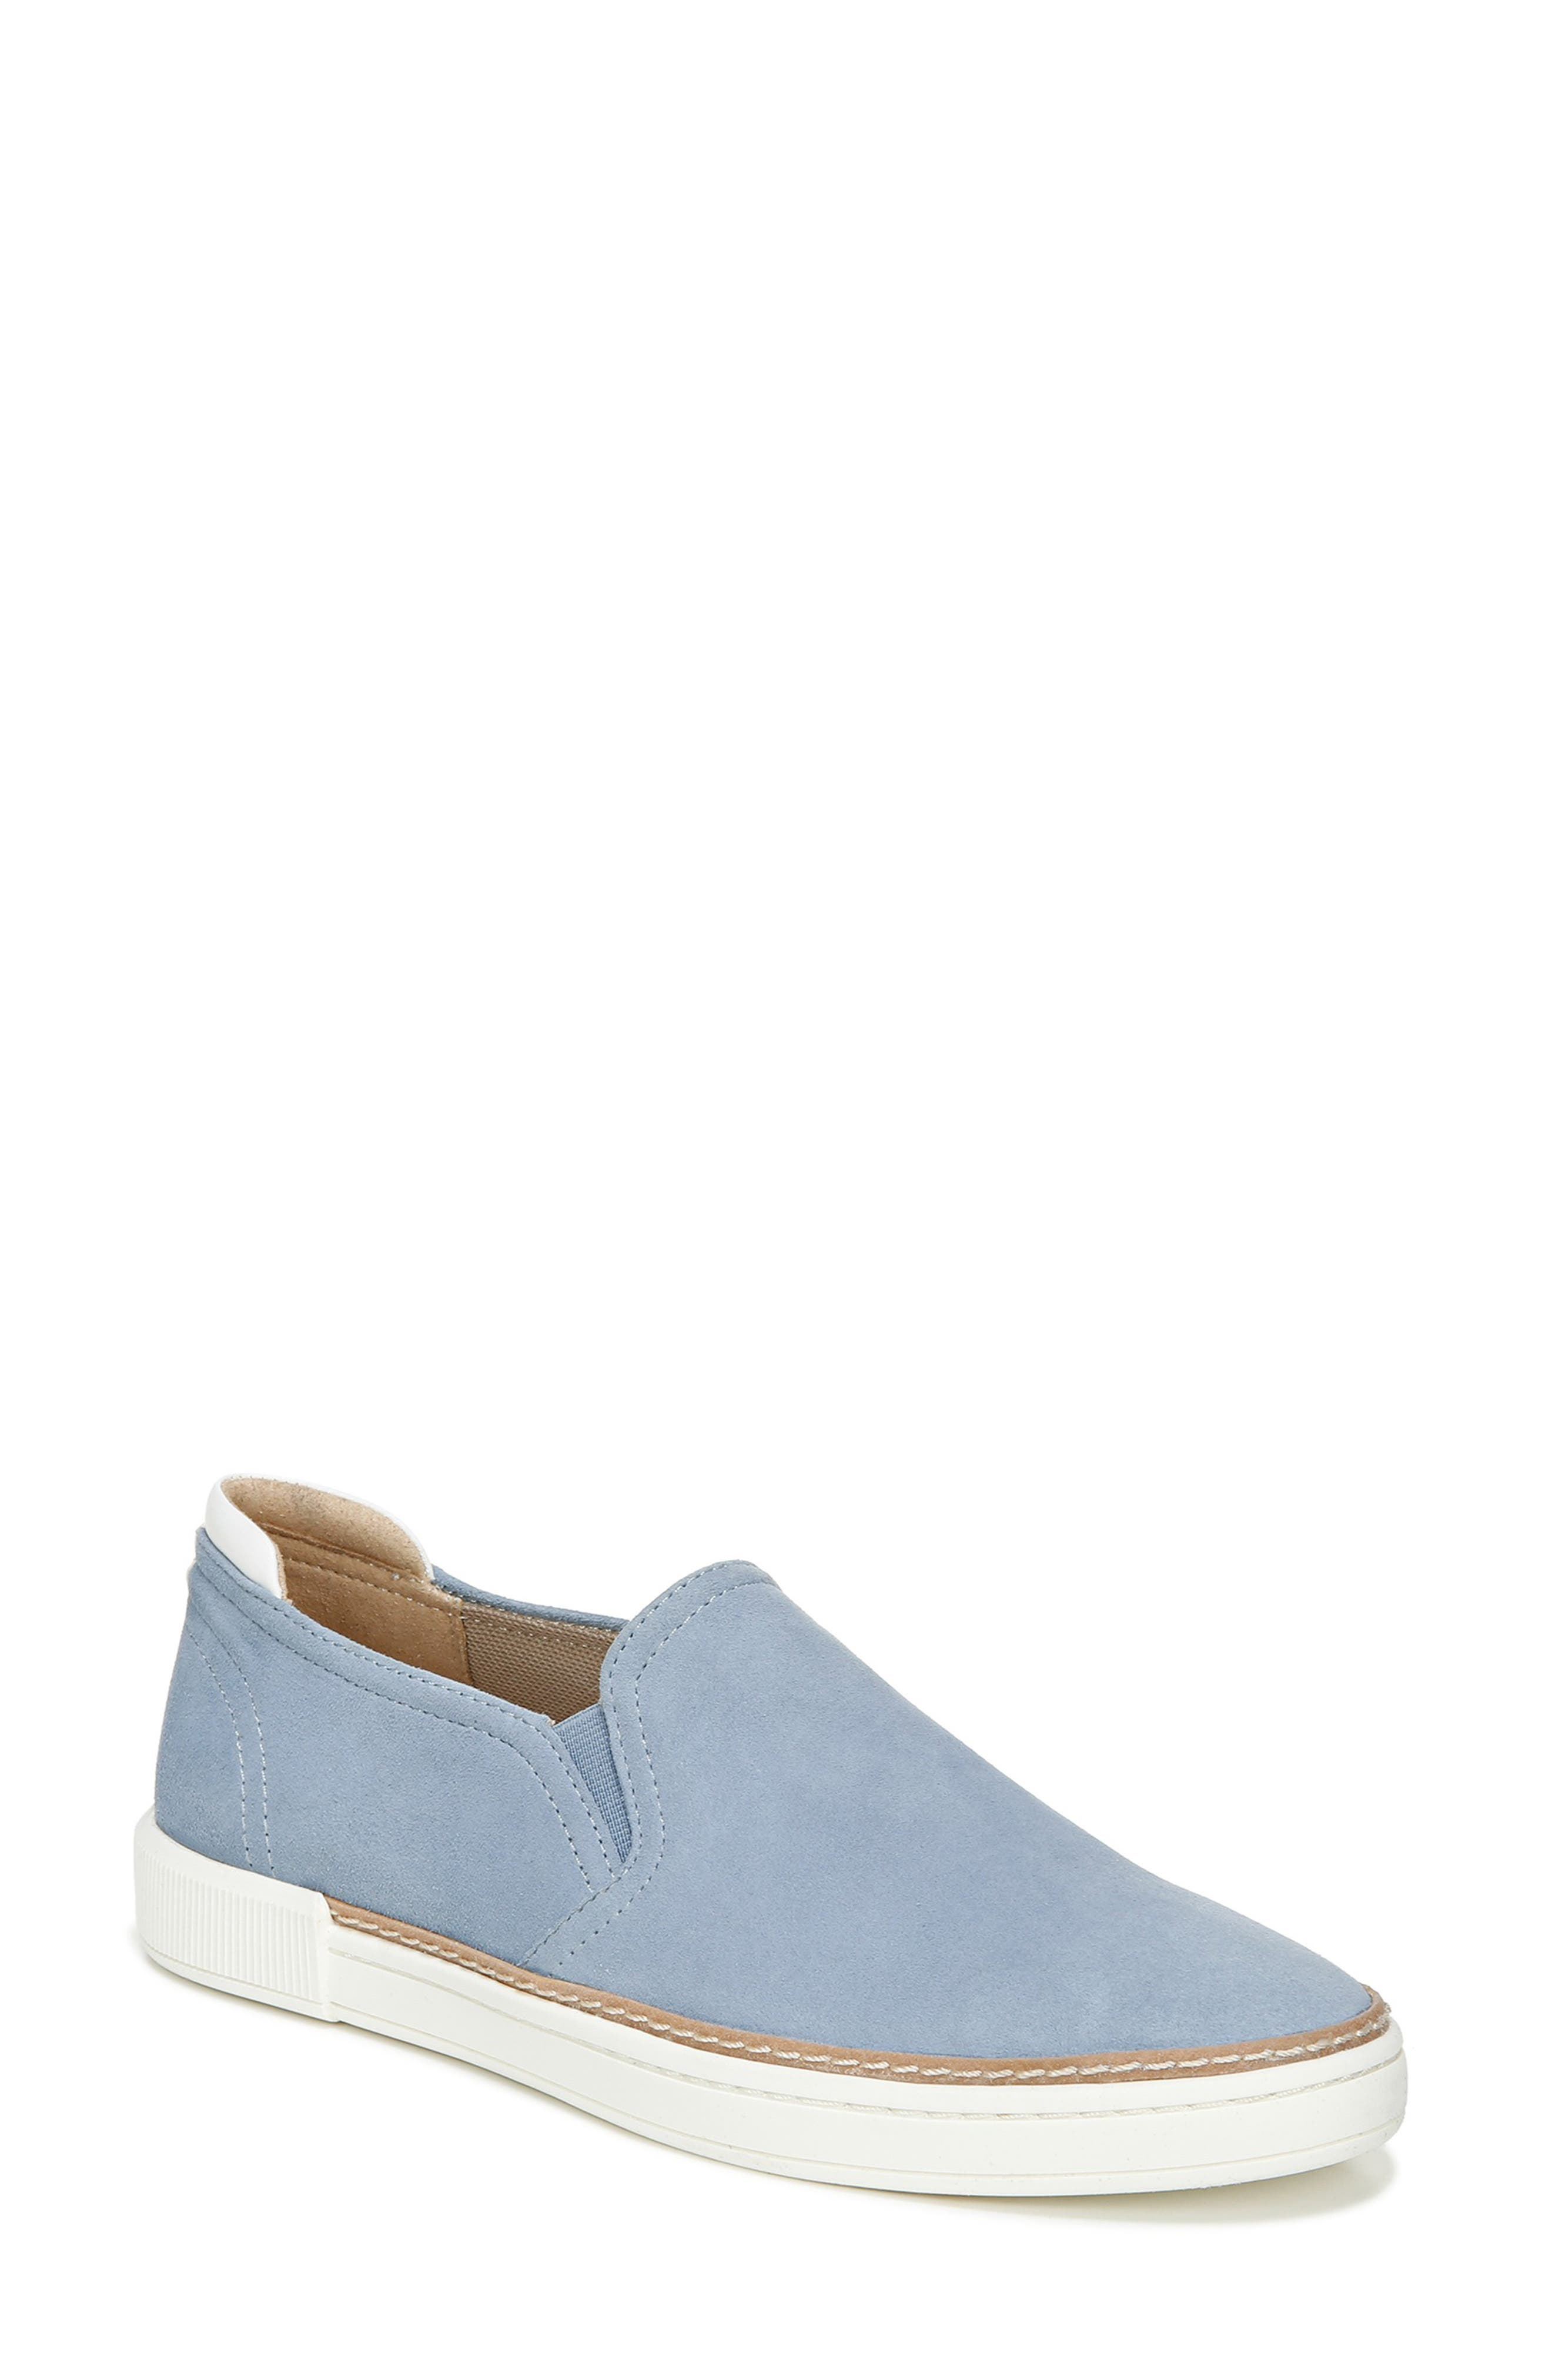 Narrow Width Shoes | Nordstrom